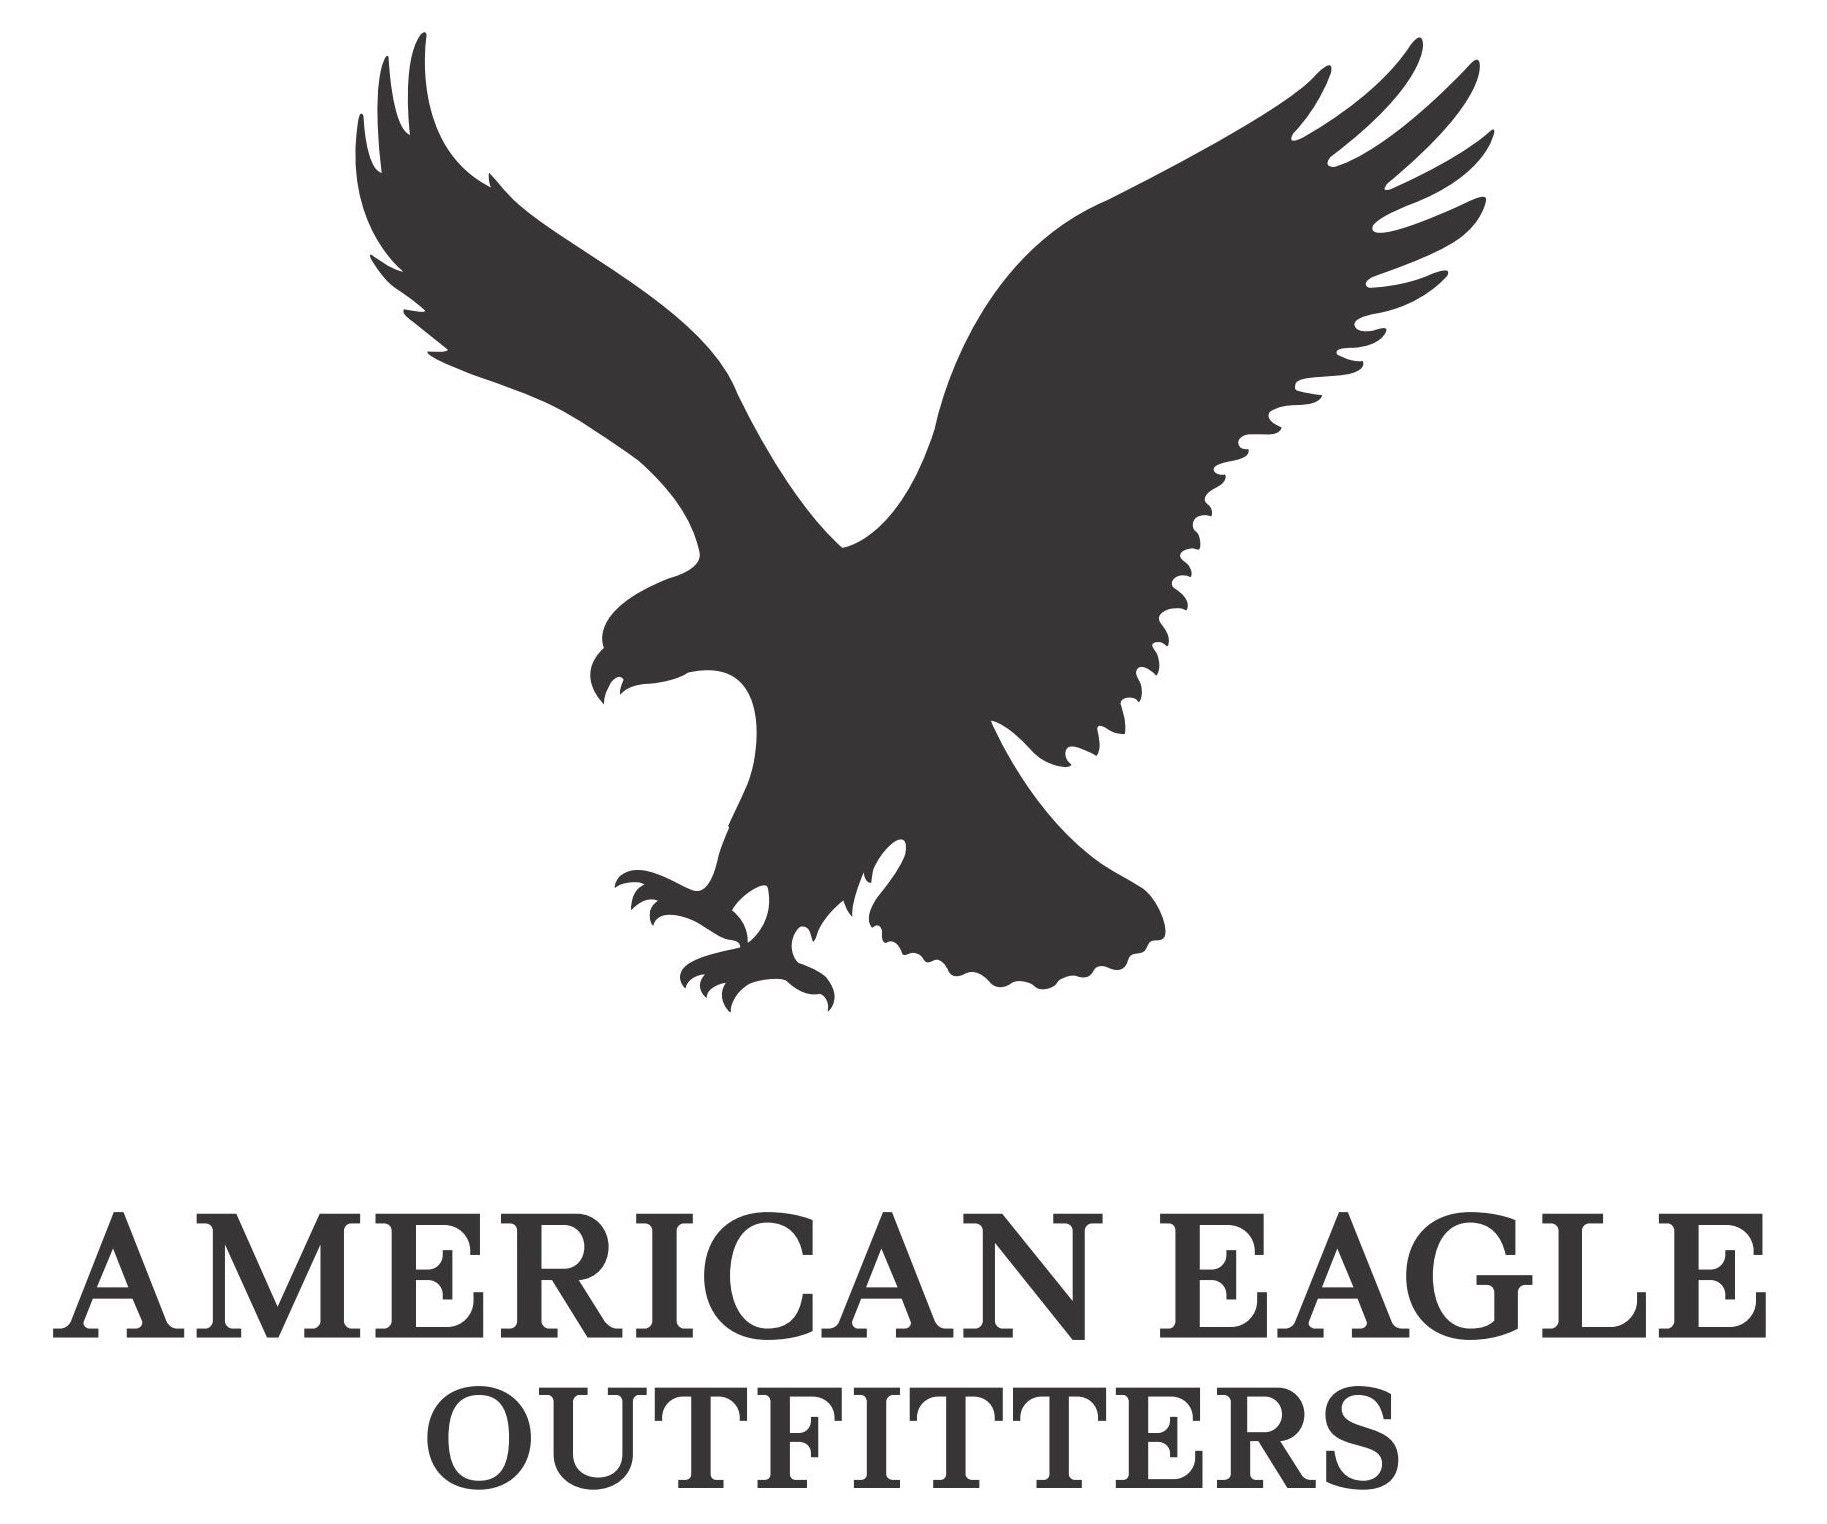 American Eagle Outfitters reviews, opinions and consumer feedback